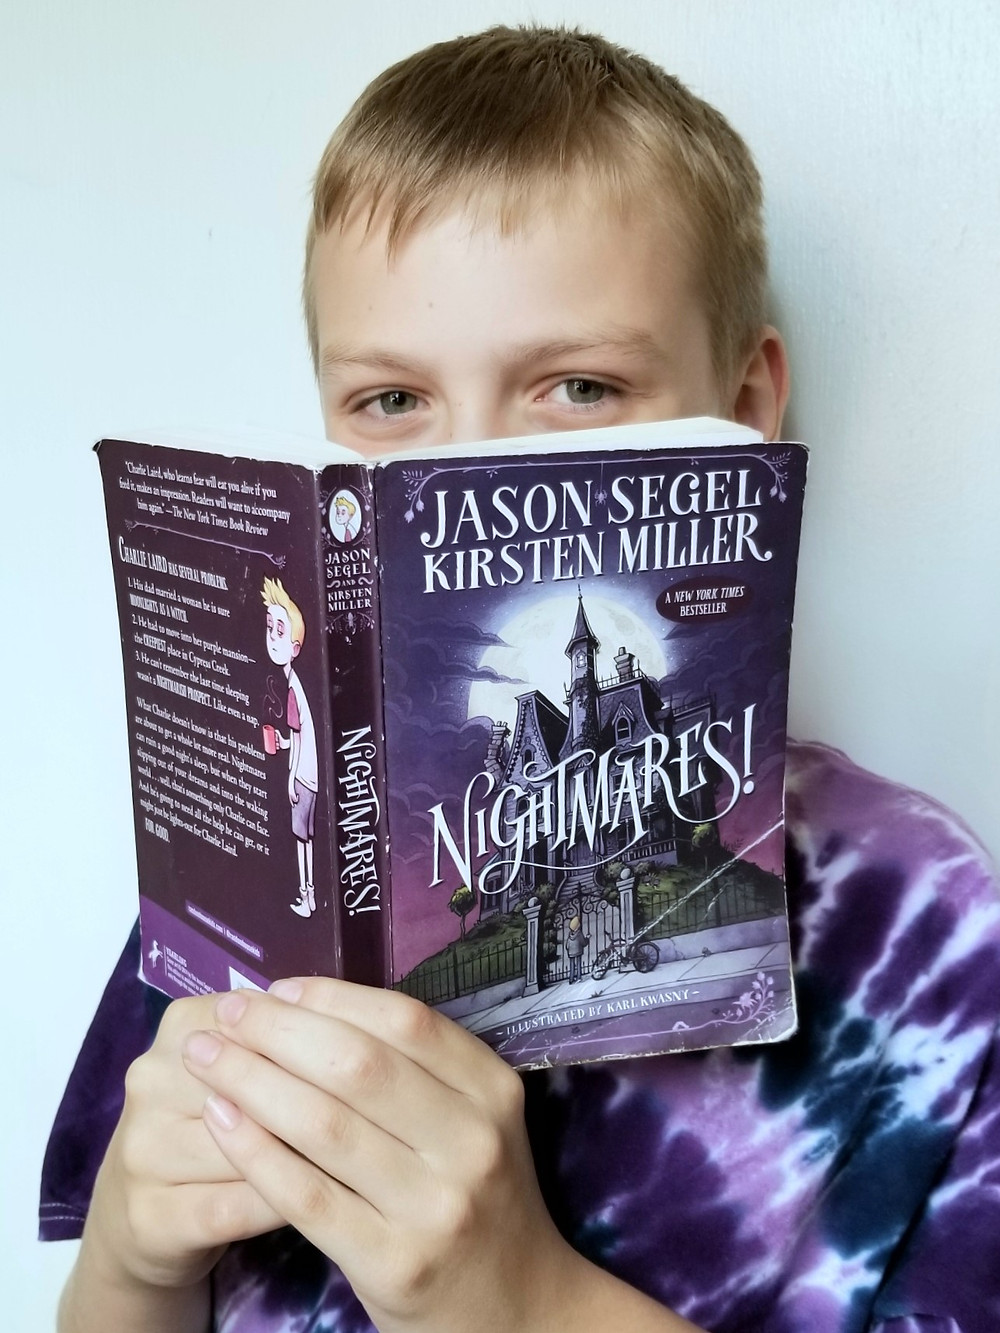 Nightmares! book review, Nightmares! by Jason Segel cover art, kids book summary and review, halloween reading list